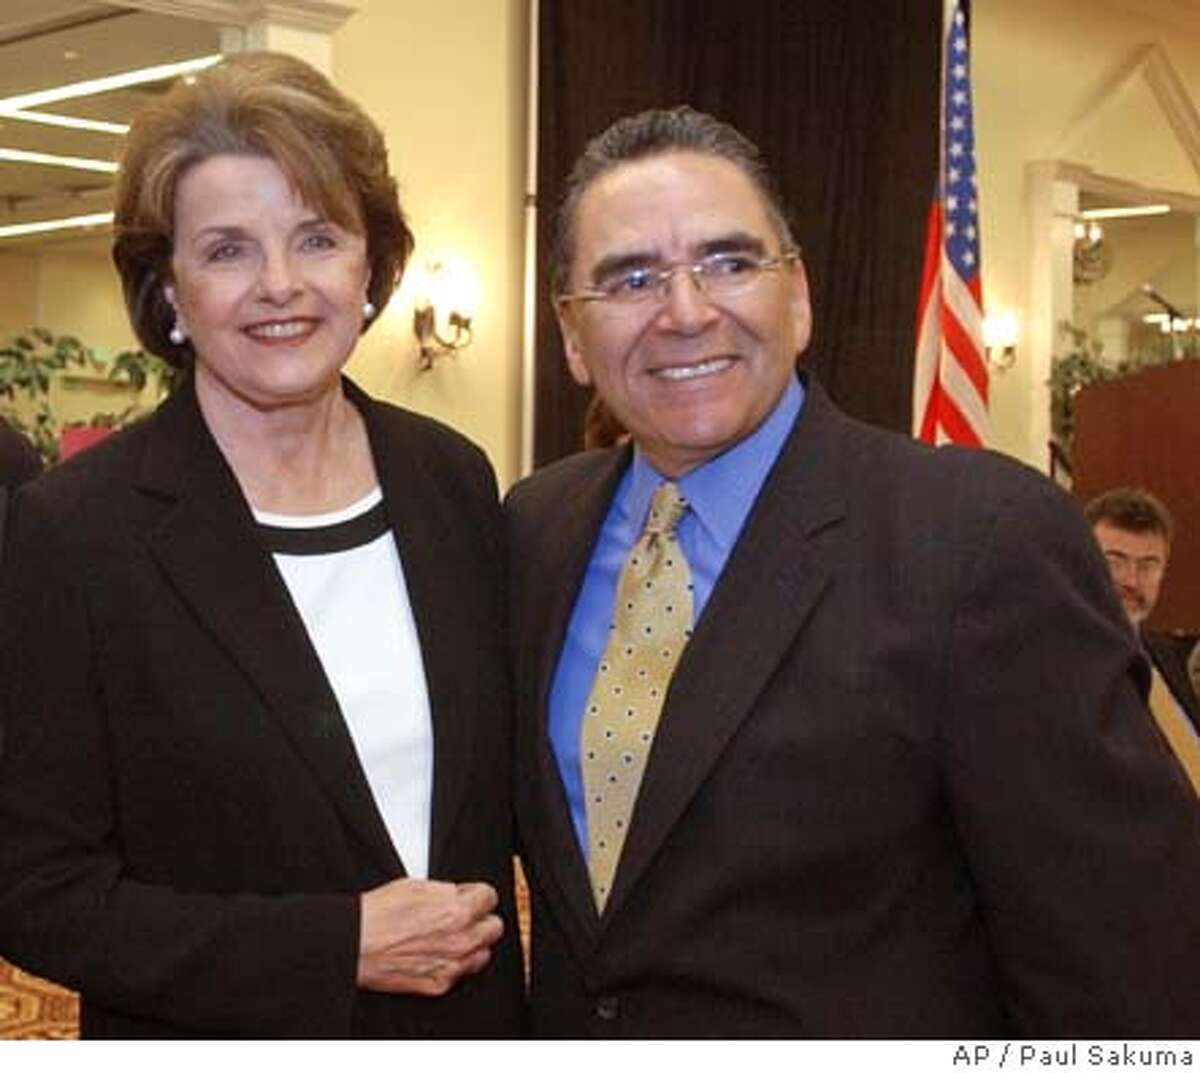 U.S. Sen. Dianne Feinstein, D-Calif., left, smiles with San Jose Mayor Ron Gonzales, right, during a meeting with Silicon Valley business leaders in San Jose, Calif., Wednesday, April 14, 2004 to discuss the flagging local economy, offshore outsourcing of jobs, tax issues and Internet access programs affecting the technology industry. Feinstein also talked about the latest developments in Iraq, the Sept. 11 Commission hearings and the growing federal deficit. (AP Photo/Paul Sakuma) San Jose Mayor Ron Gonzales is urging Washington to keep the BART project on track. Sen. Dianne Feinstein says only $30 million is expected to be spent to remove trees killed by bark beetles, though Congress has approved $120 million. Sen. Dianne Feinstein helped organize the bipartisan call by senators, which mirrors a letter sent by House members in April. Sen. Dianne Feinstein helped organize the bipartisan call by senators, which mirrors a letter sent by House members in April. Nation#MainNews#Chronicle#6/8/2004#ALL#5star##0421718306